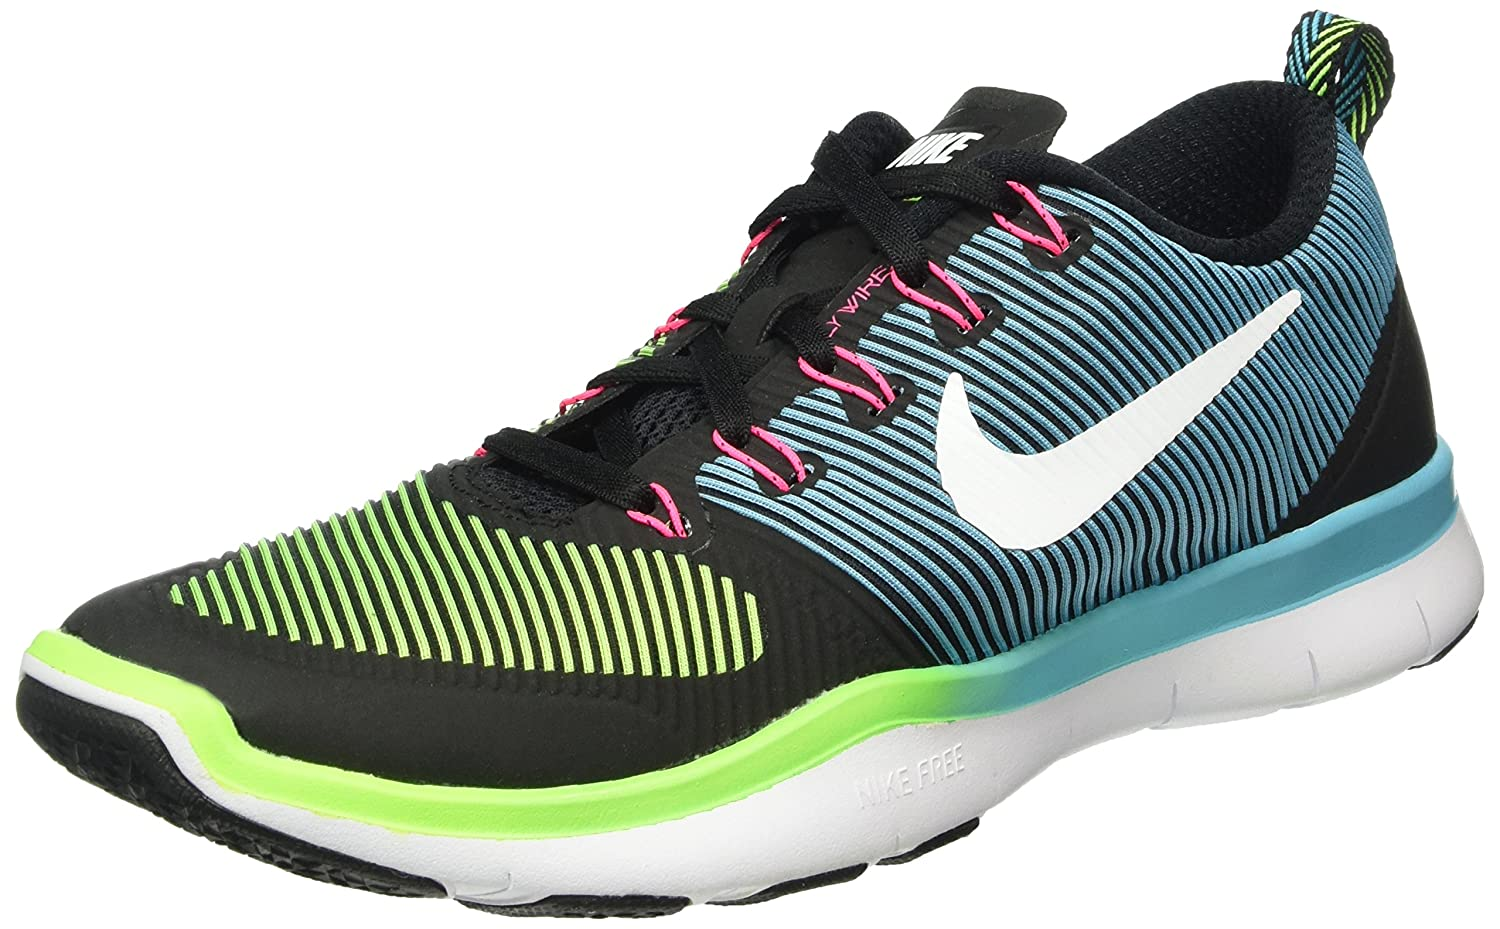 NIKE Men's Free Train Versatility Running Shoes B014GDR31U 9.5 D(M) US|Black/White/Electric Green/Hyper Pink